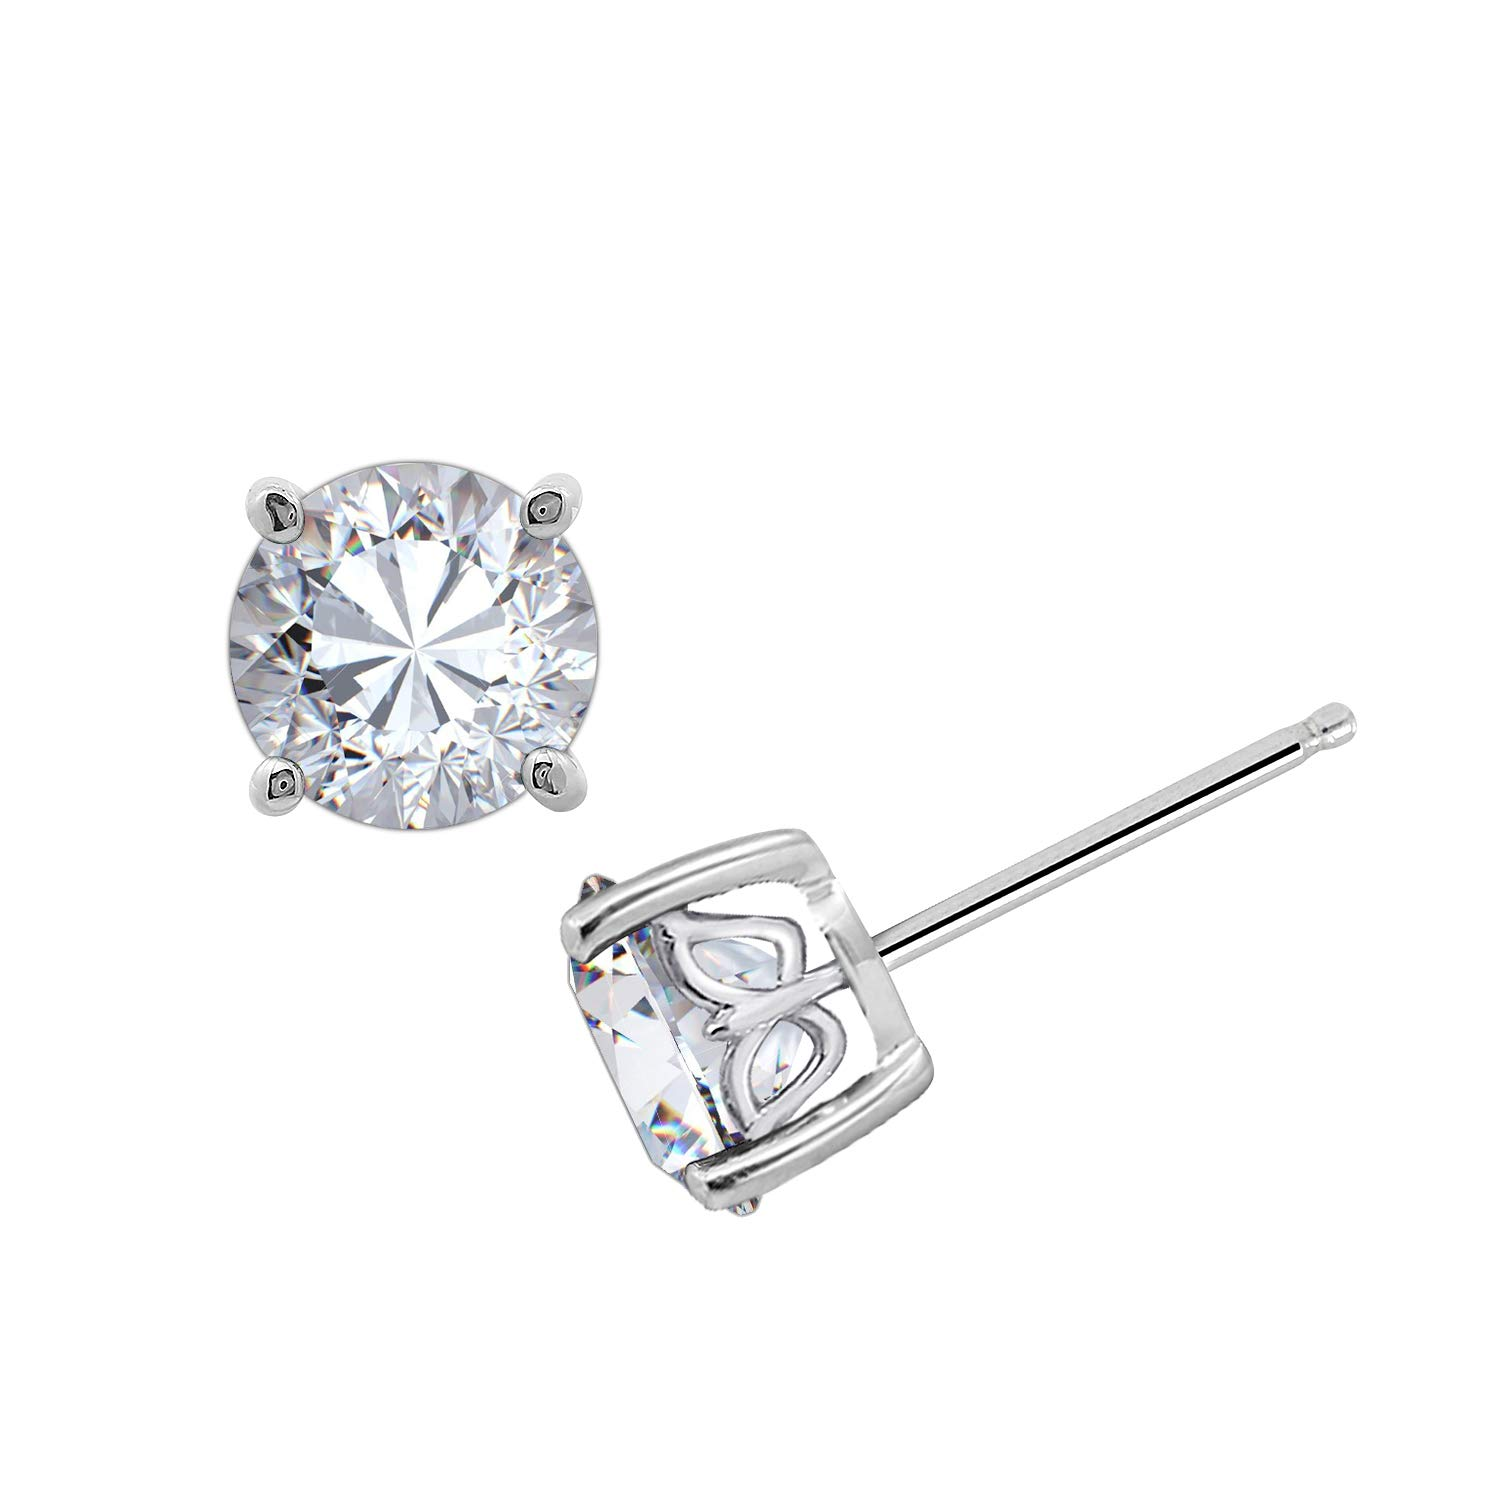 GEMOUR Rhodium Yellow Gold Rose Gold Plated Sterling Silver 2 cttw Round Cut Cubic Zirconia Stud Earrings